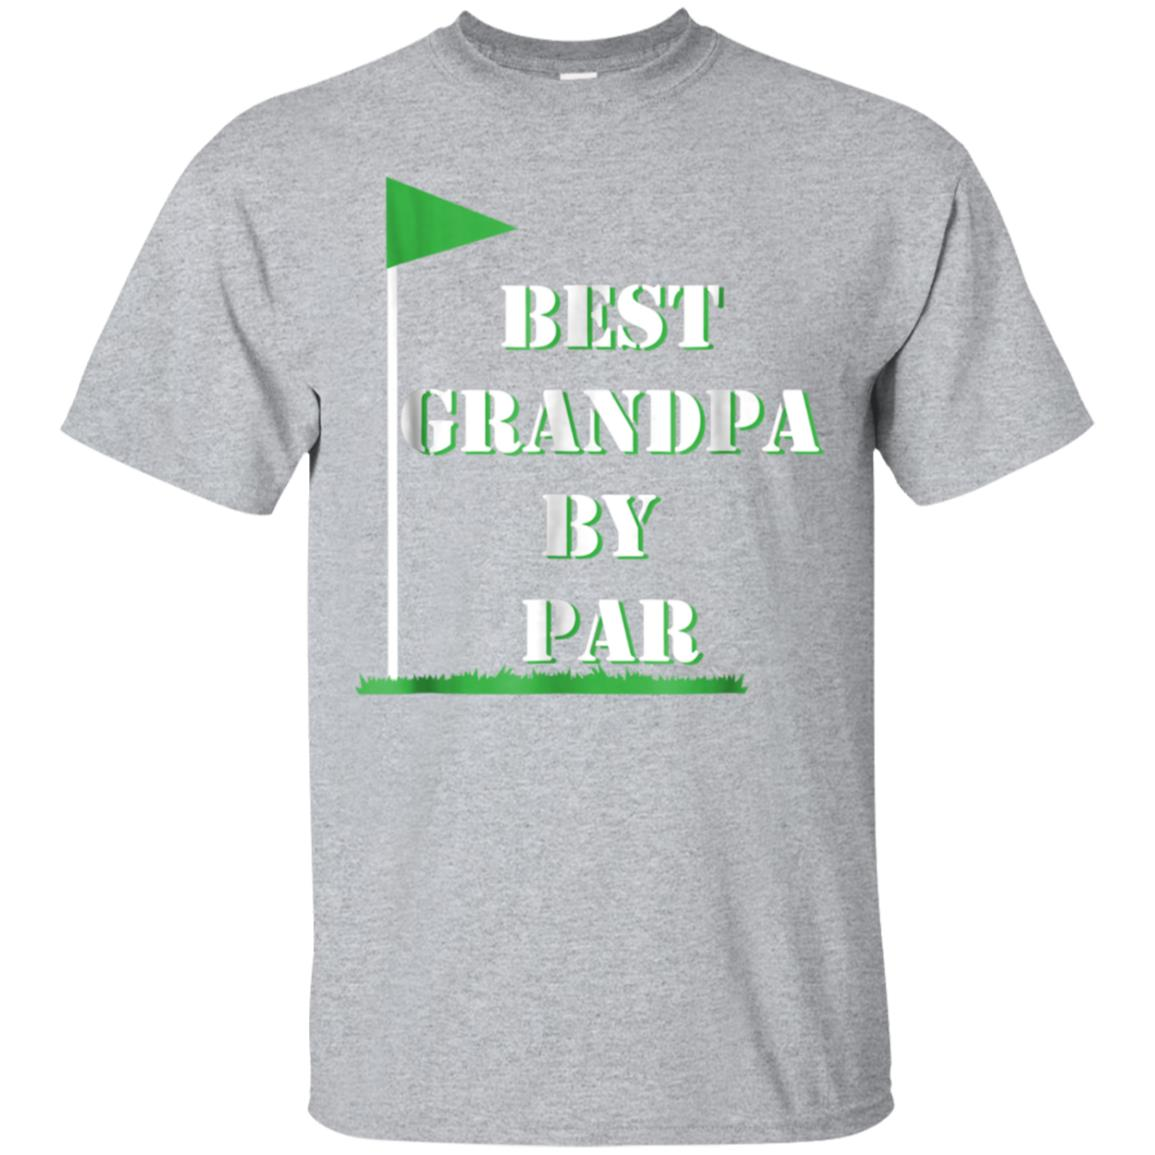 32979859 Awesome mens father's day best grandpa by par funny golf gift shirt -  99promocode